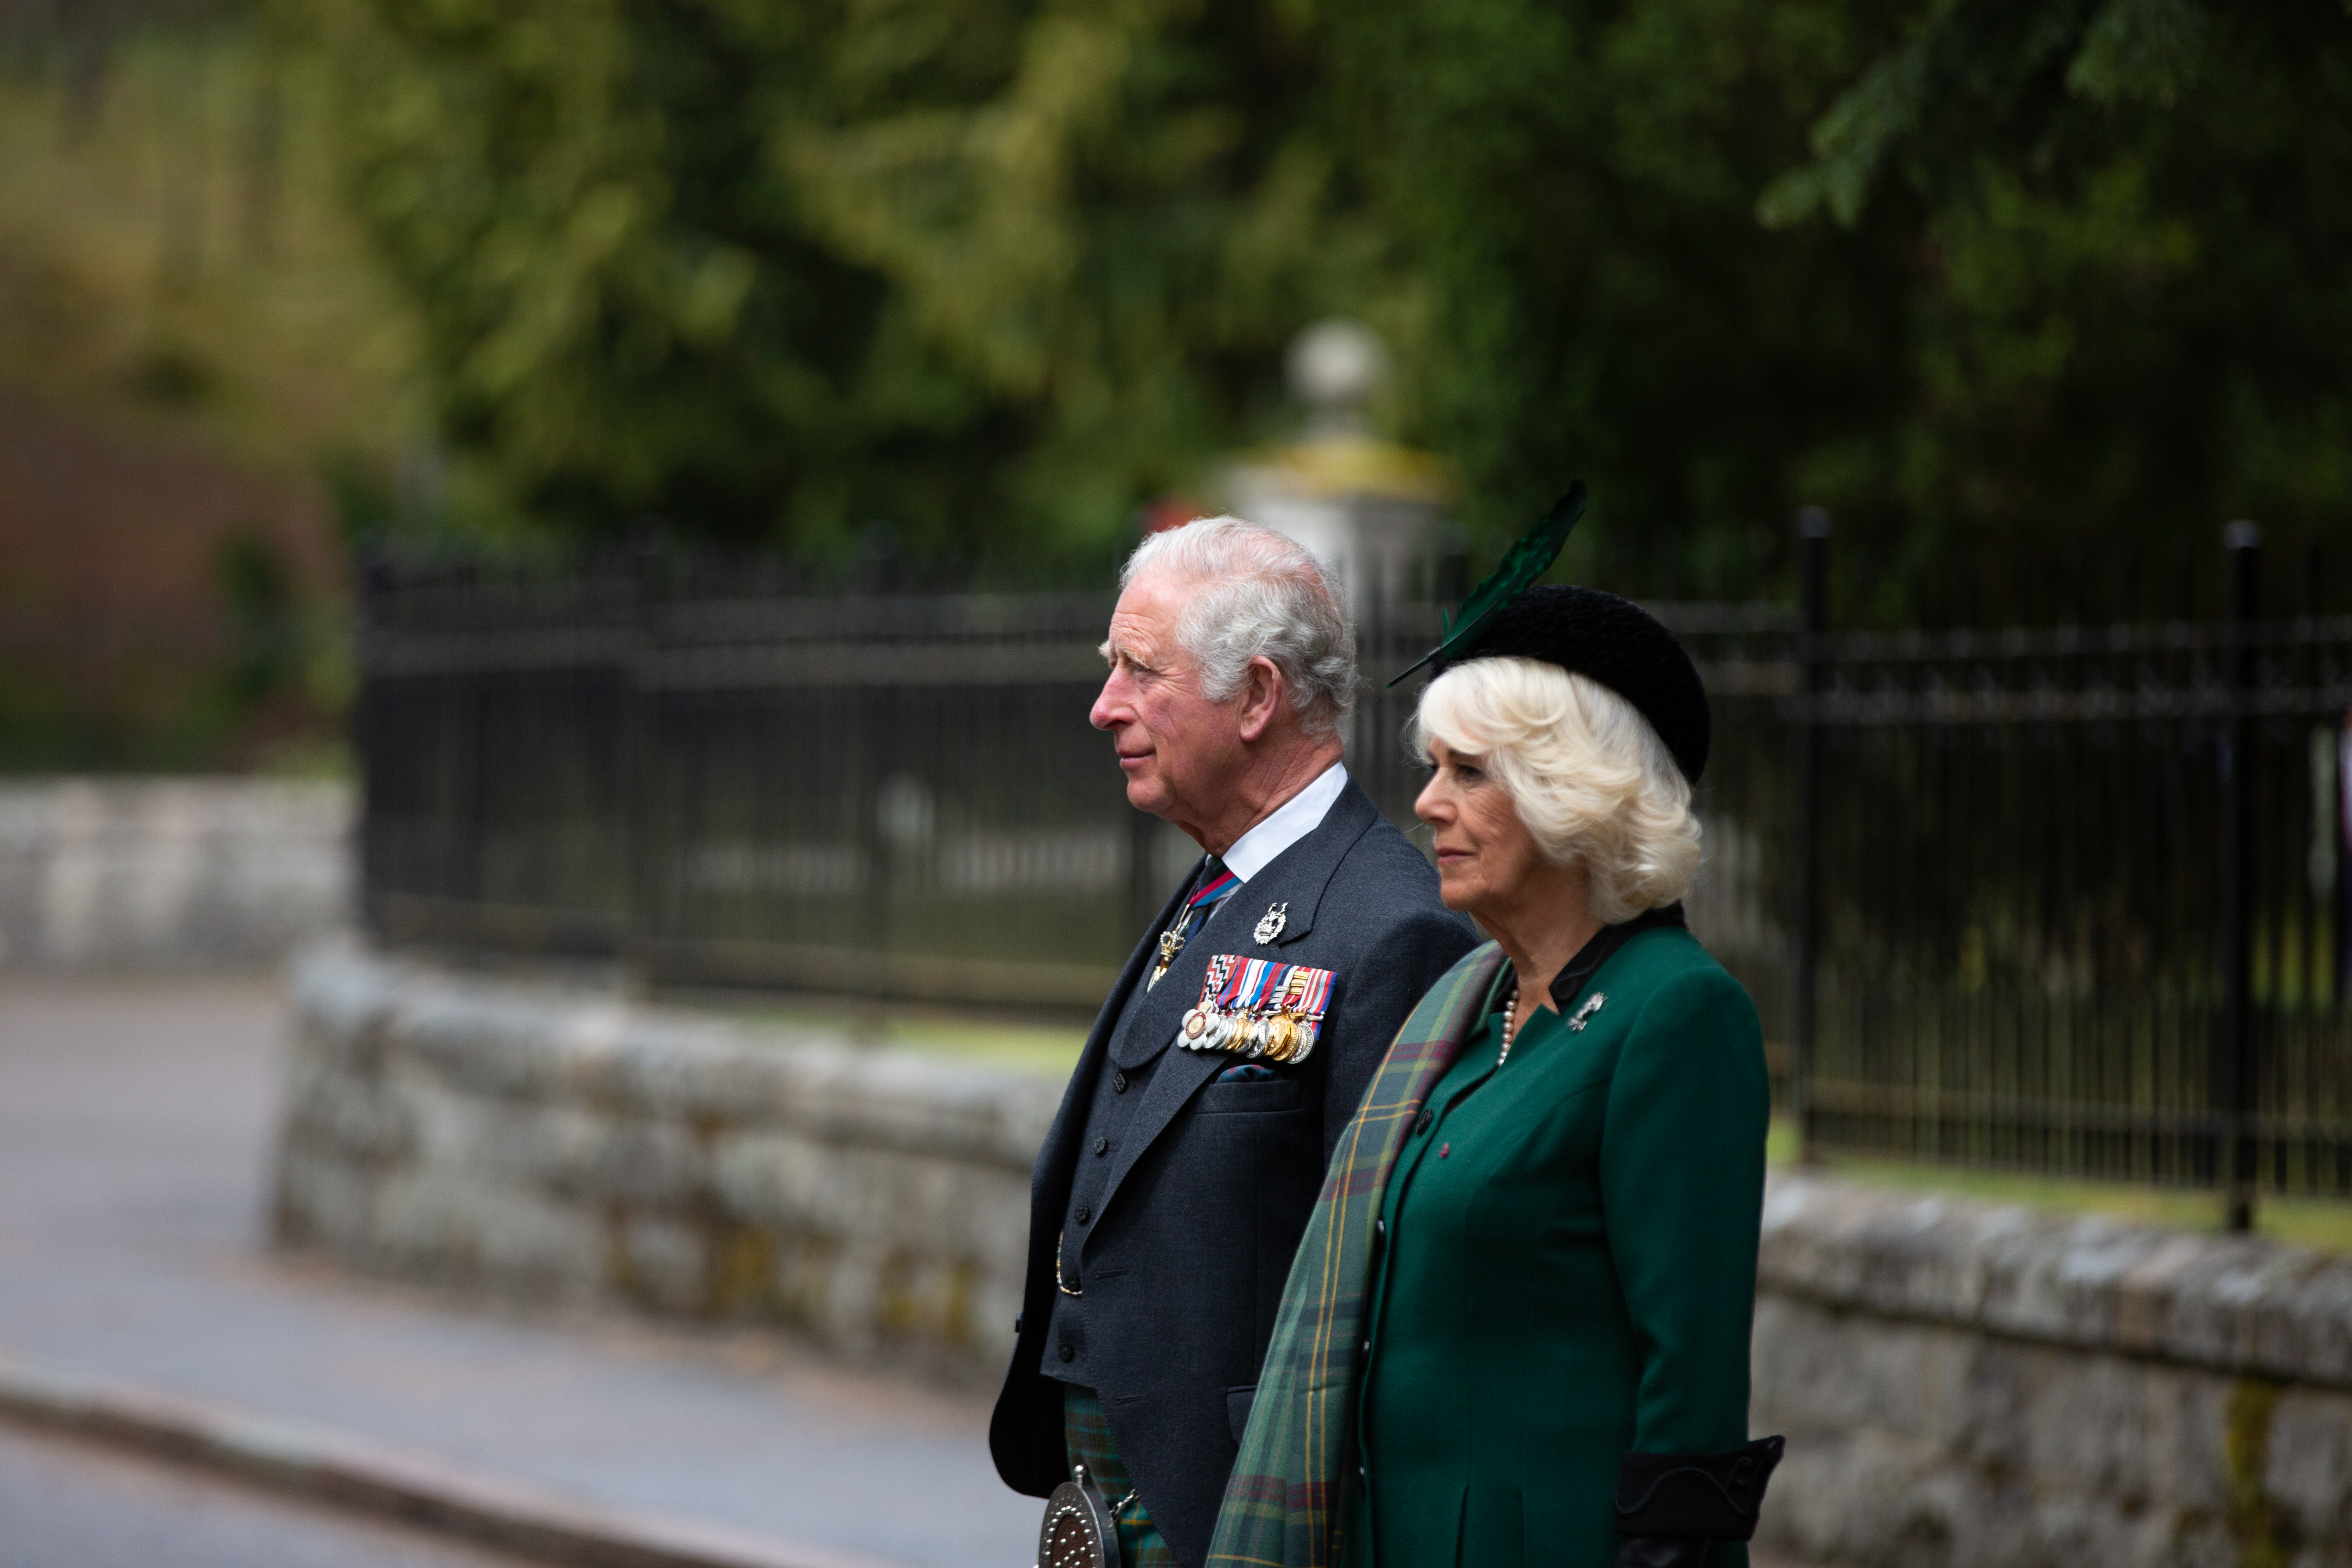 The Prince of Wales and The Duchess of Cornwall lead a 2-minute silence on VE Day